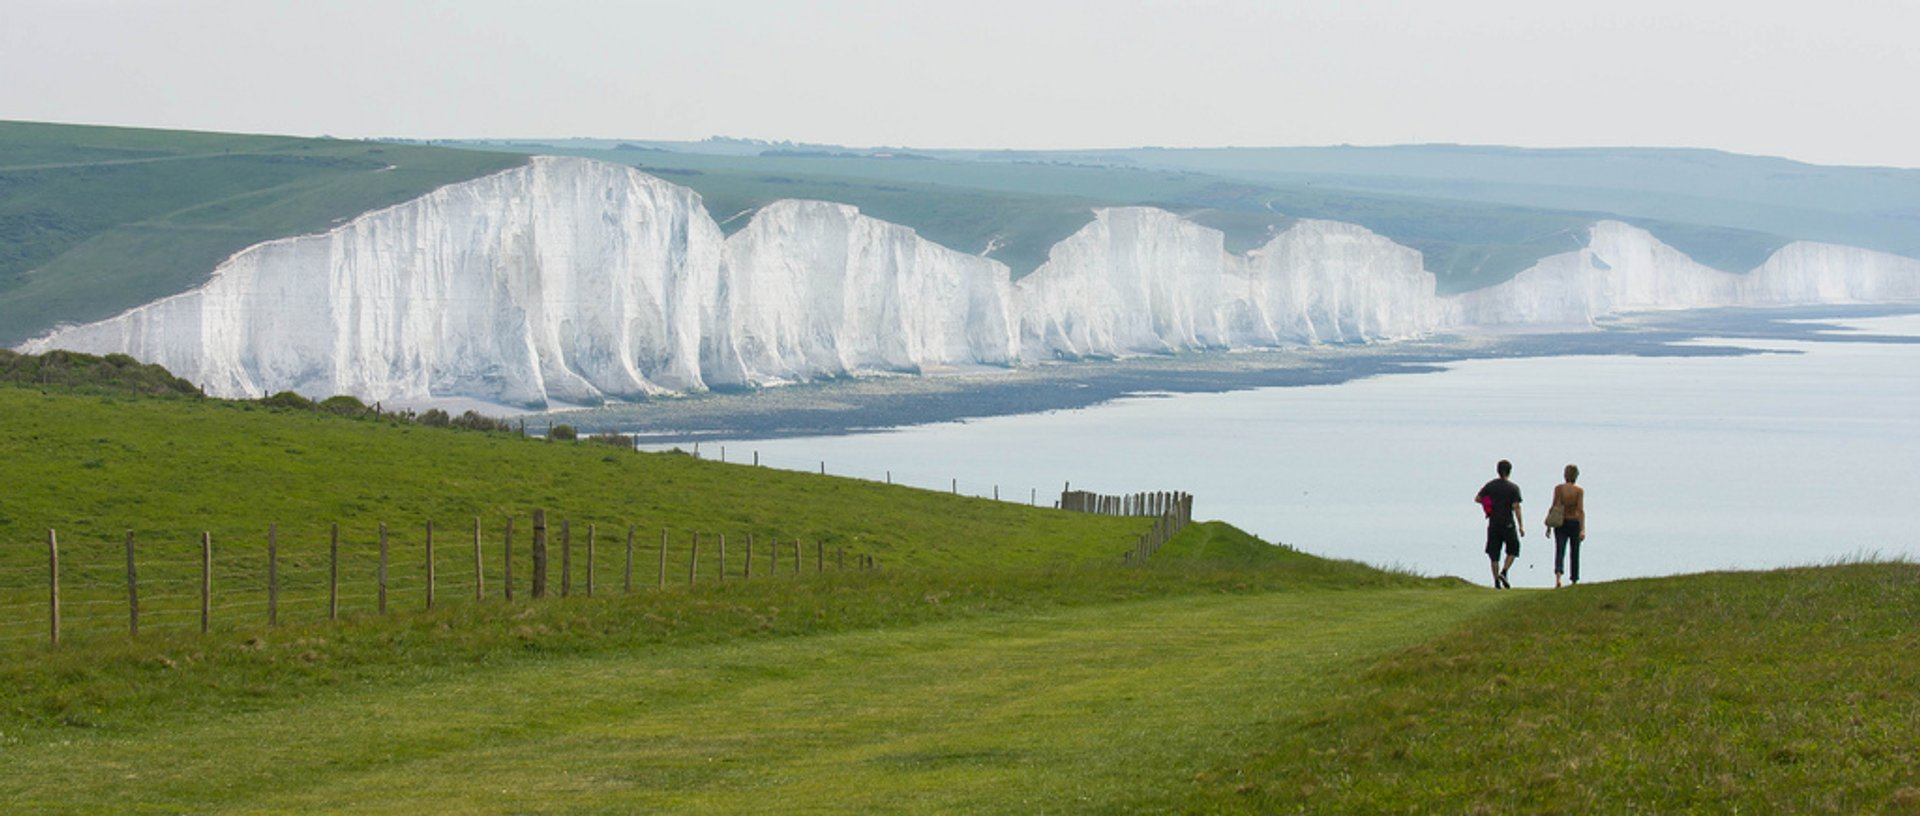 Chalk Cliffs of East Sussex in England 2020 - Best Time